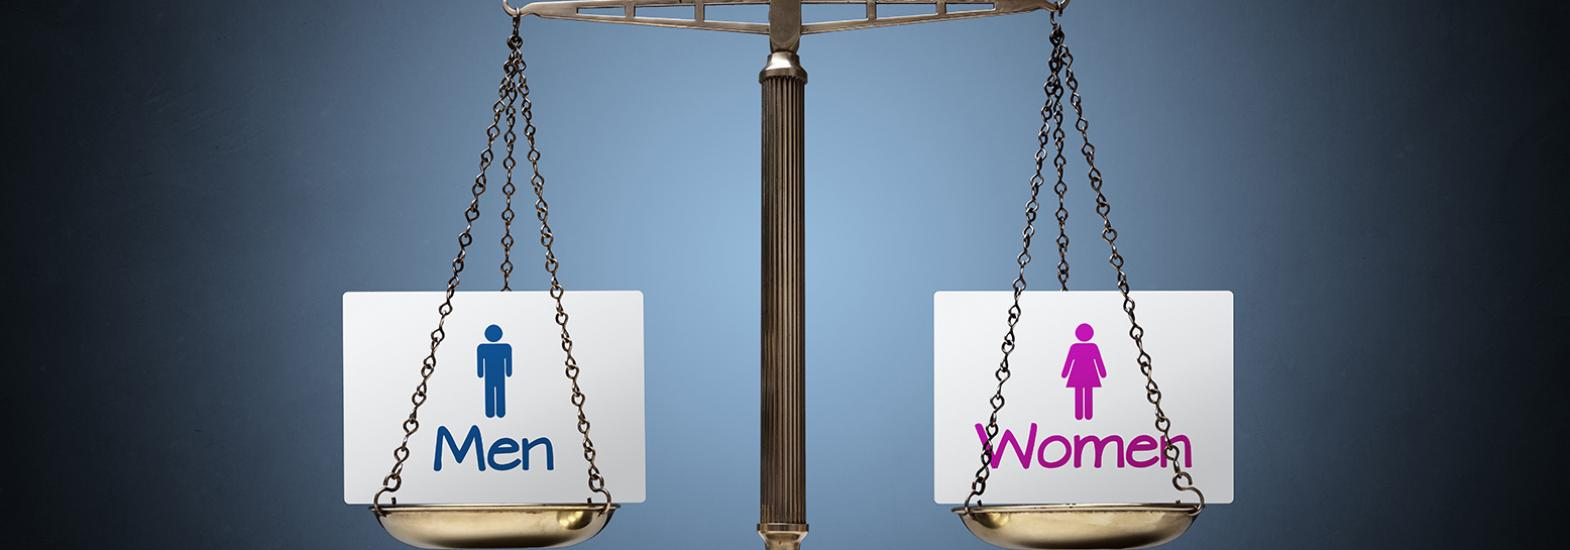 Men and Women equality scale